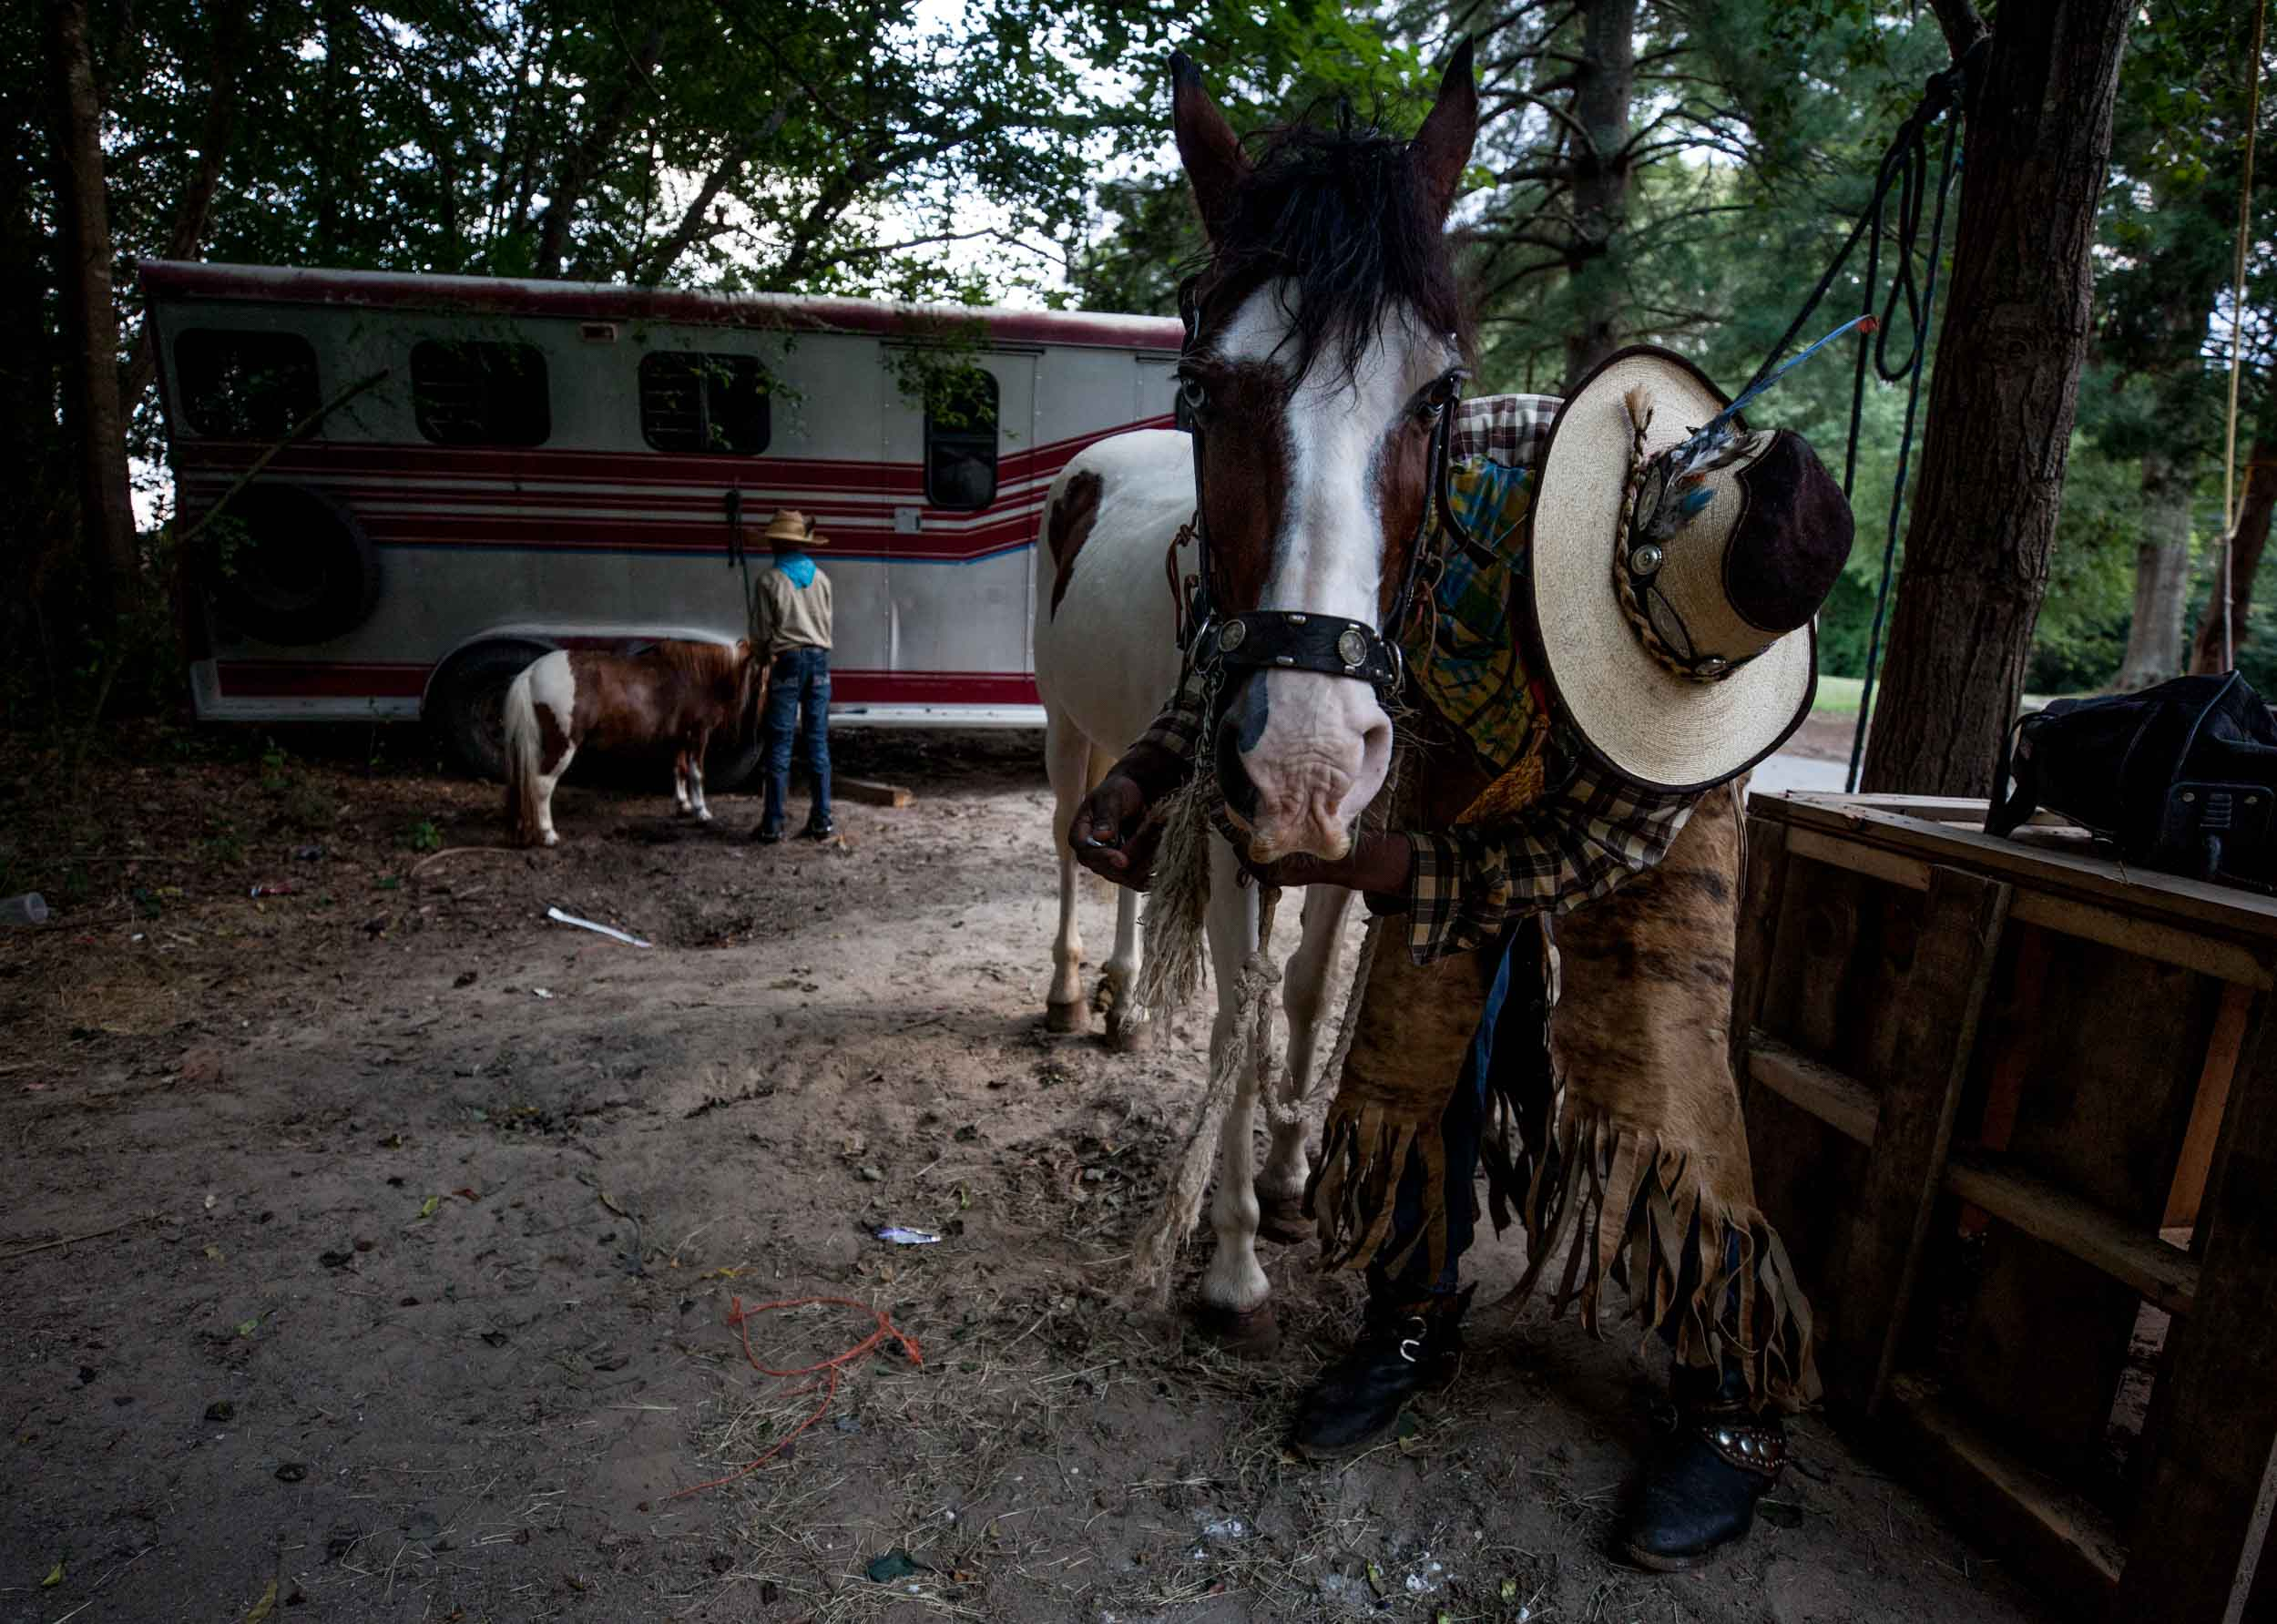 Arkansas Dave, right, cleans his horse while is son, Logan Dansby, 12, ties up his pony on a ranch off of Flat Shoals Parkway, Tuesday, July 30, 2019, in Union City, Ga. Branden Camp for AJC